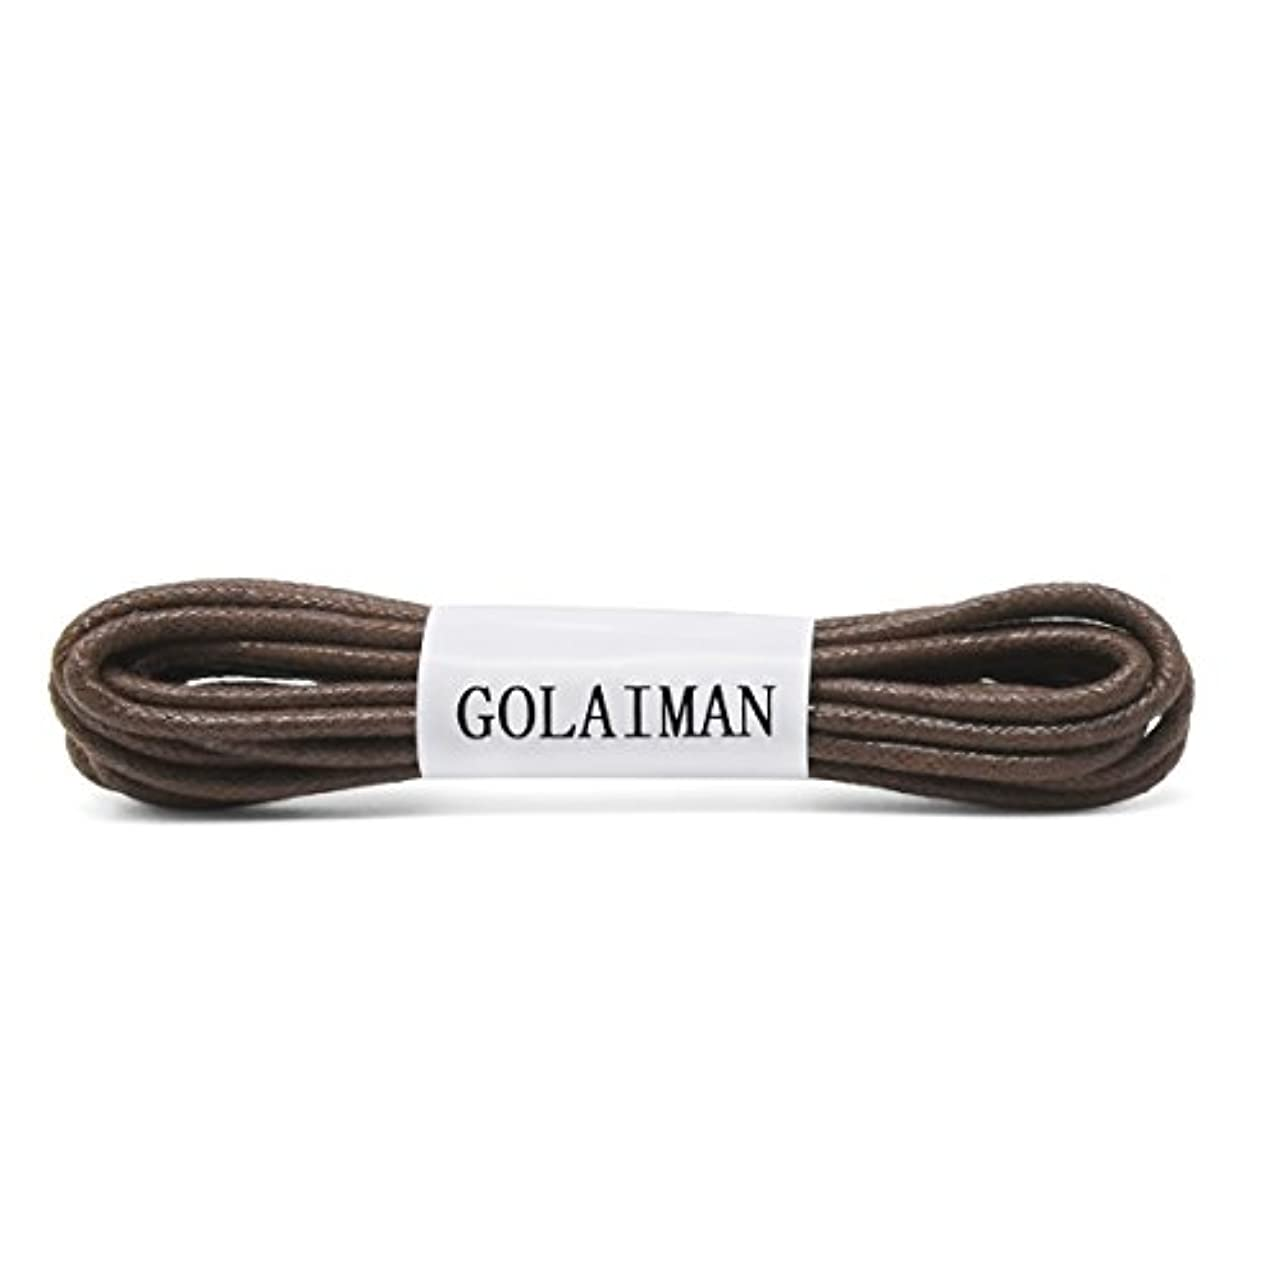 GOLAIMAN Waxed Dress Shoe Laces - Round Oxfords Shoelaces Leather Shoe Lace For Men Women